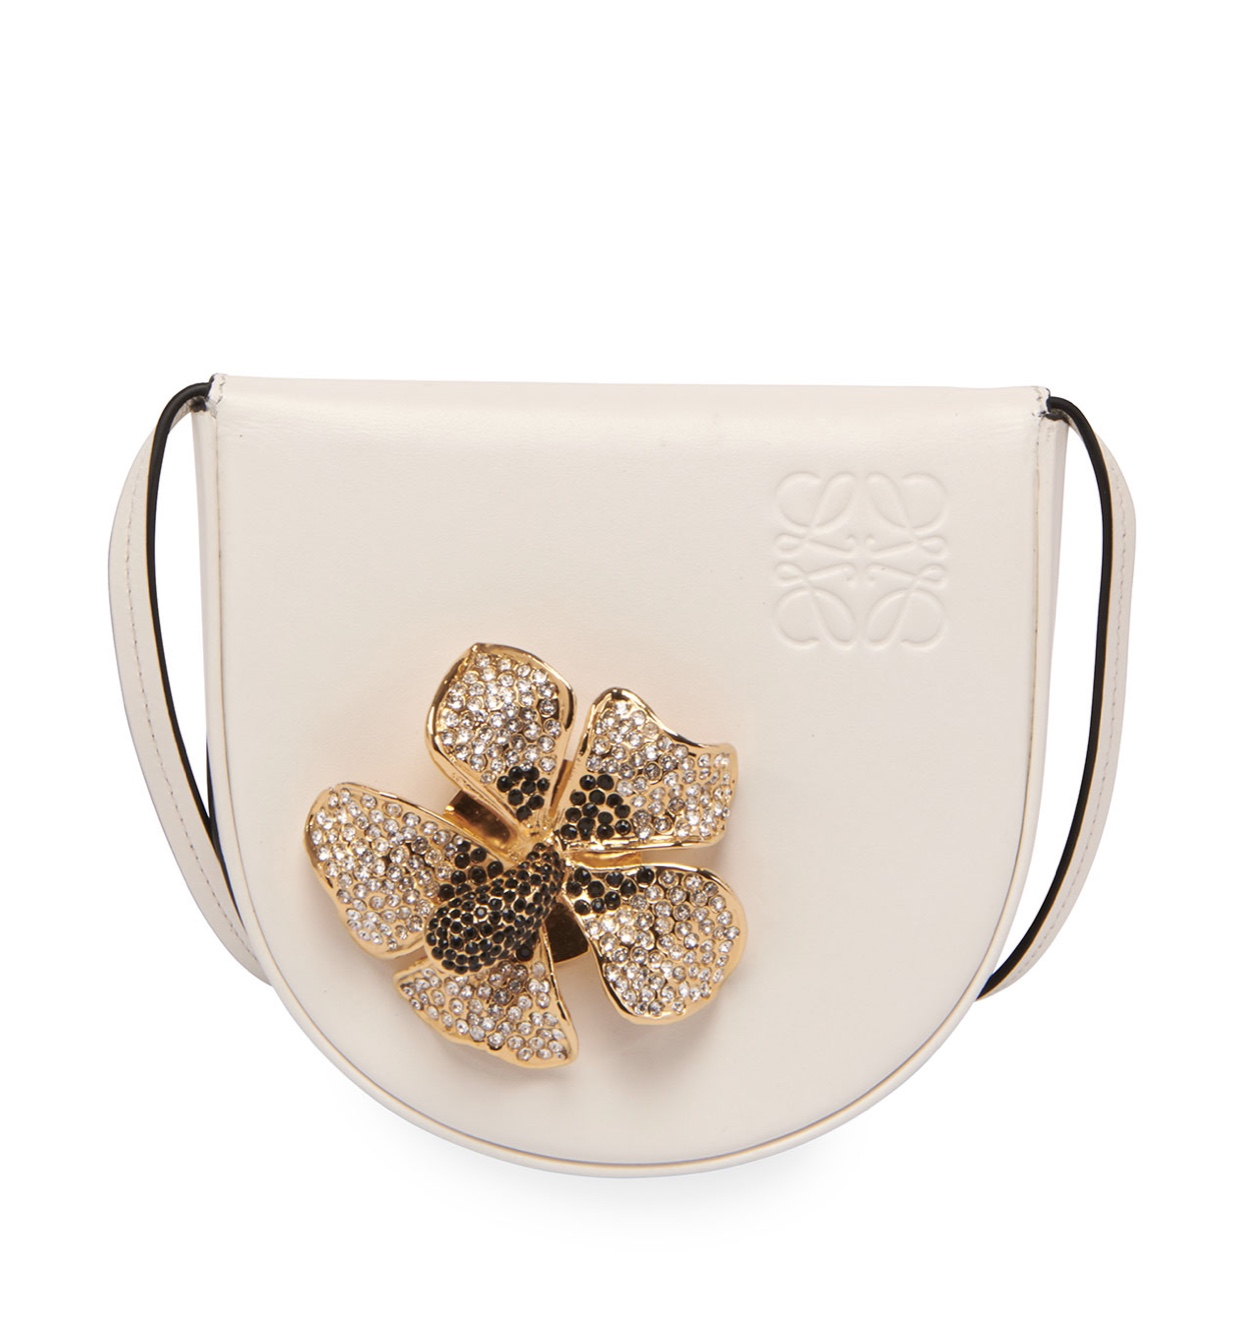 LOEWE Heel Small Floral Horseshoe Crossbody Bag